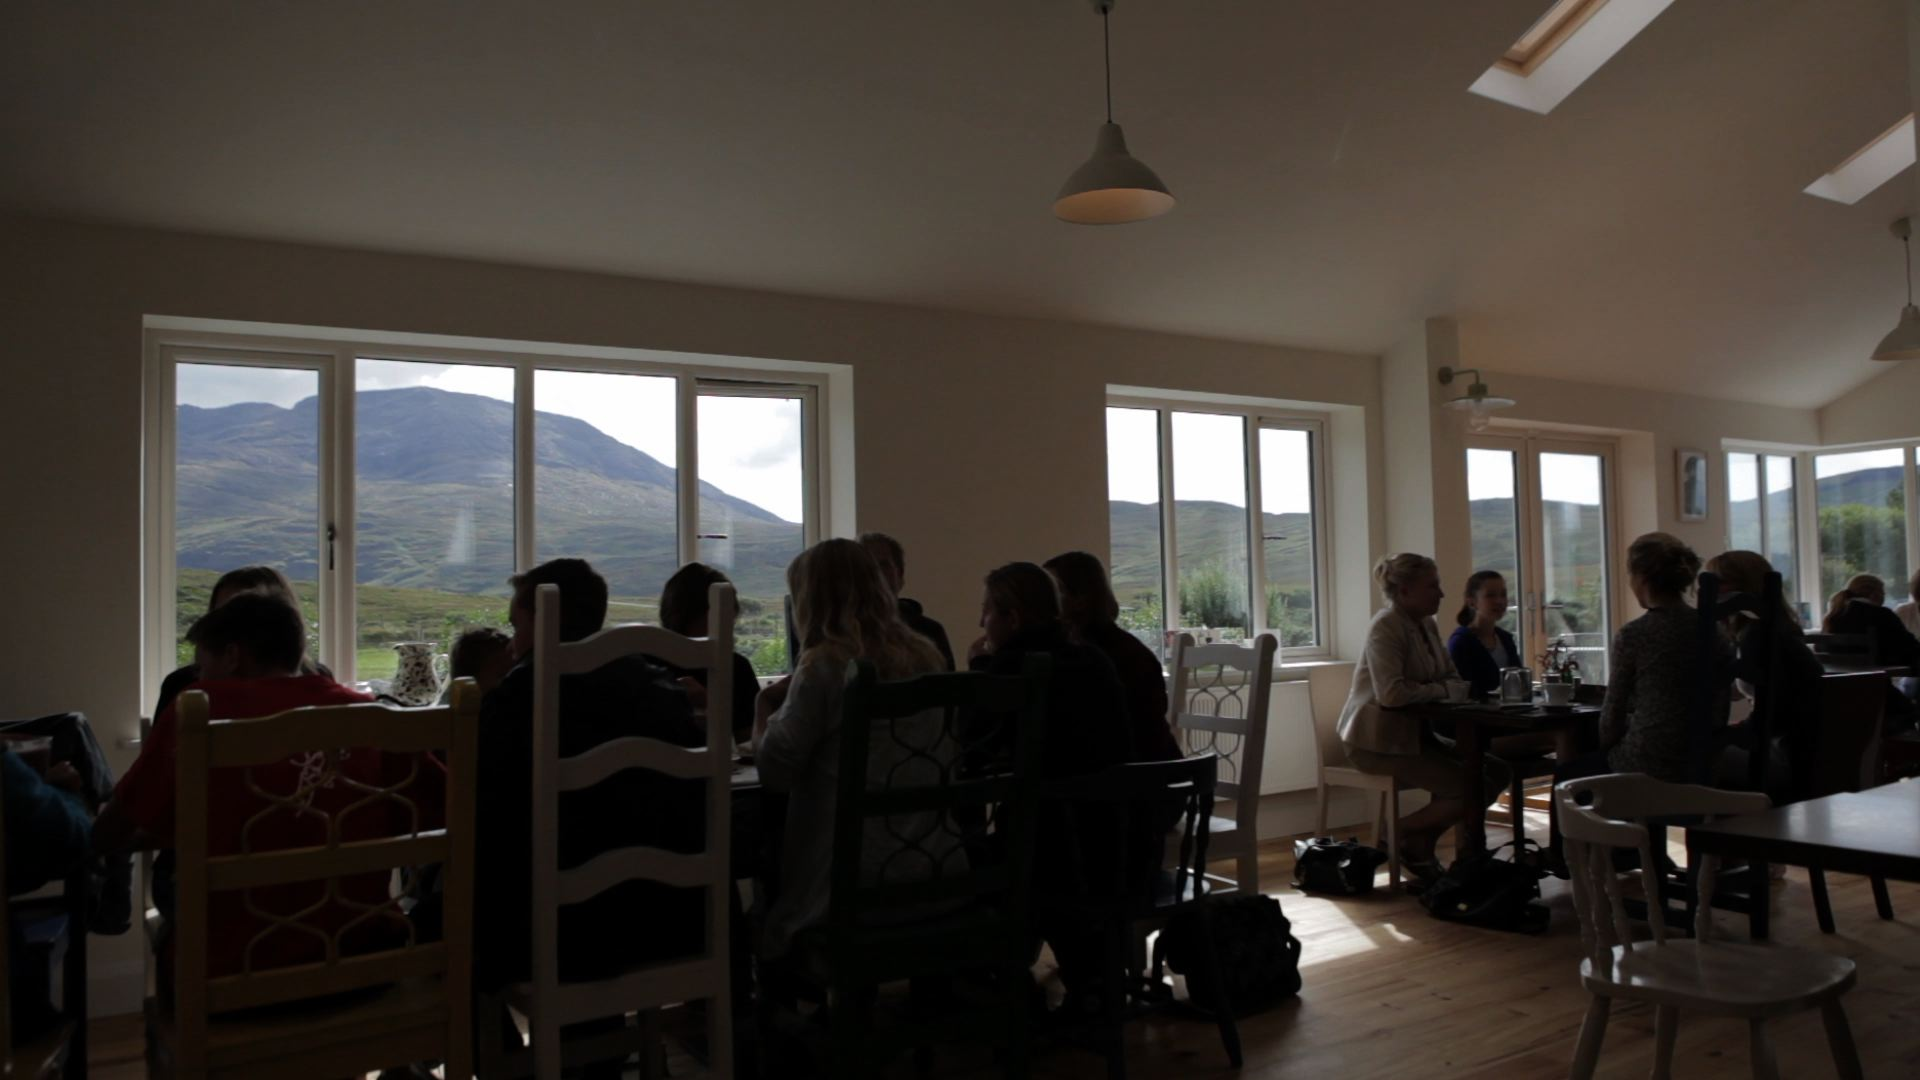 After going for a walk or feeding the animals, the tea rooms are a great place to relax & have a cup of tea & cake & take in the beauty of surroundings .